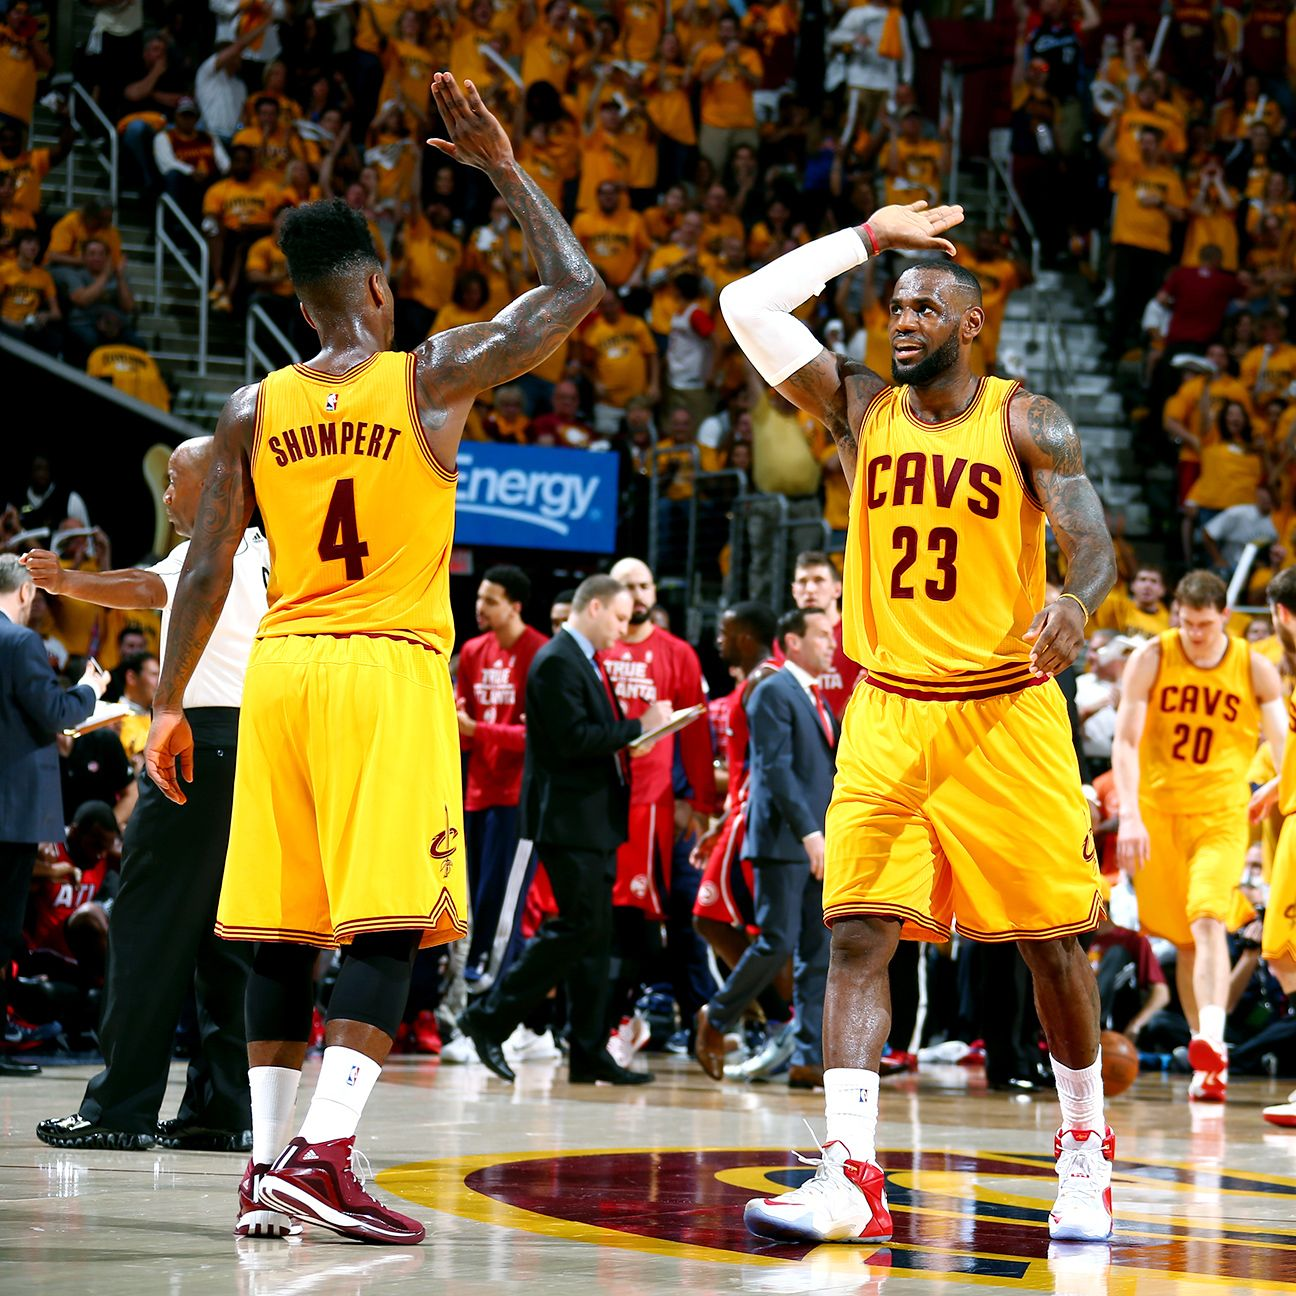 nfl playoffs mountain time cavs game live stats